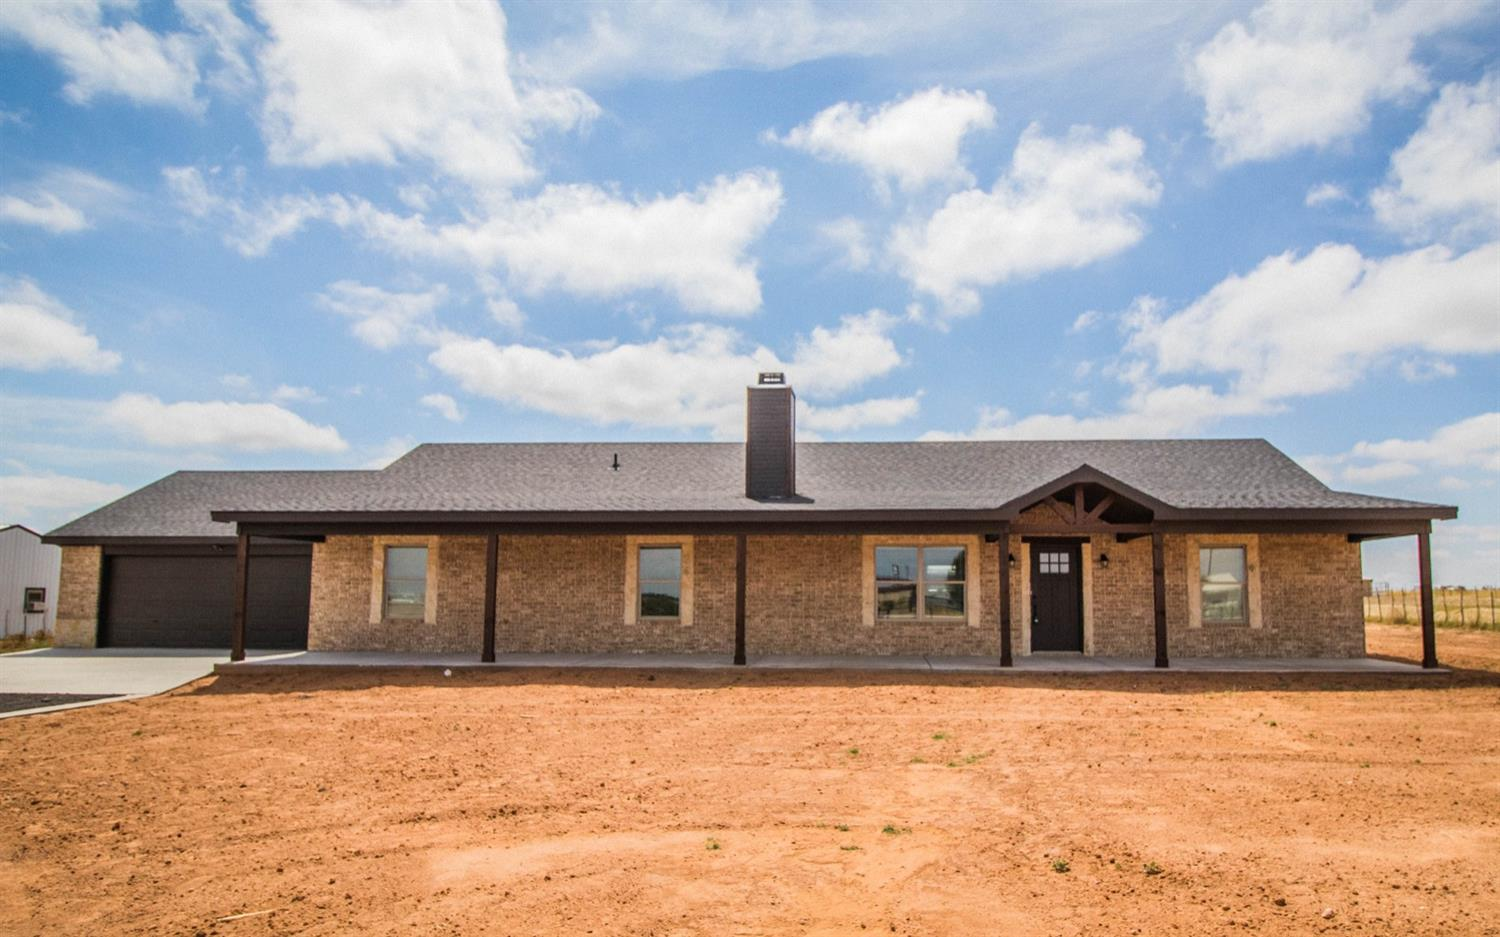 This gorgeous new construction home located in the desirable Shallowater ISD on 1 acre has it all! The open concept living room and kitchen are complete with a bricked fireplace and vaulted ceilings. Escape to the isolated master that features a large wrap around closet, oversized walk in shower ,and double vanities. The large laundry room includes extra storage space and room for a fridge. Relax and enjoy the wide open spaces on the oversized covered back patio.